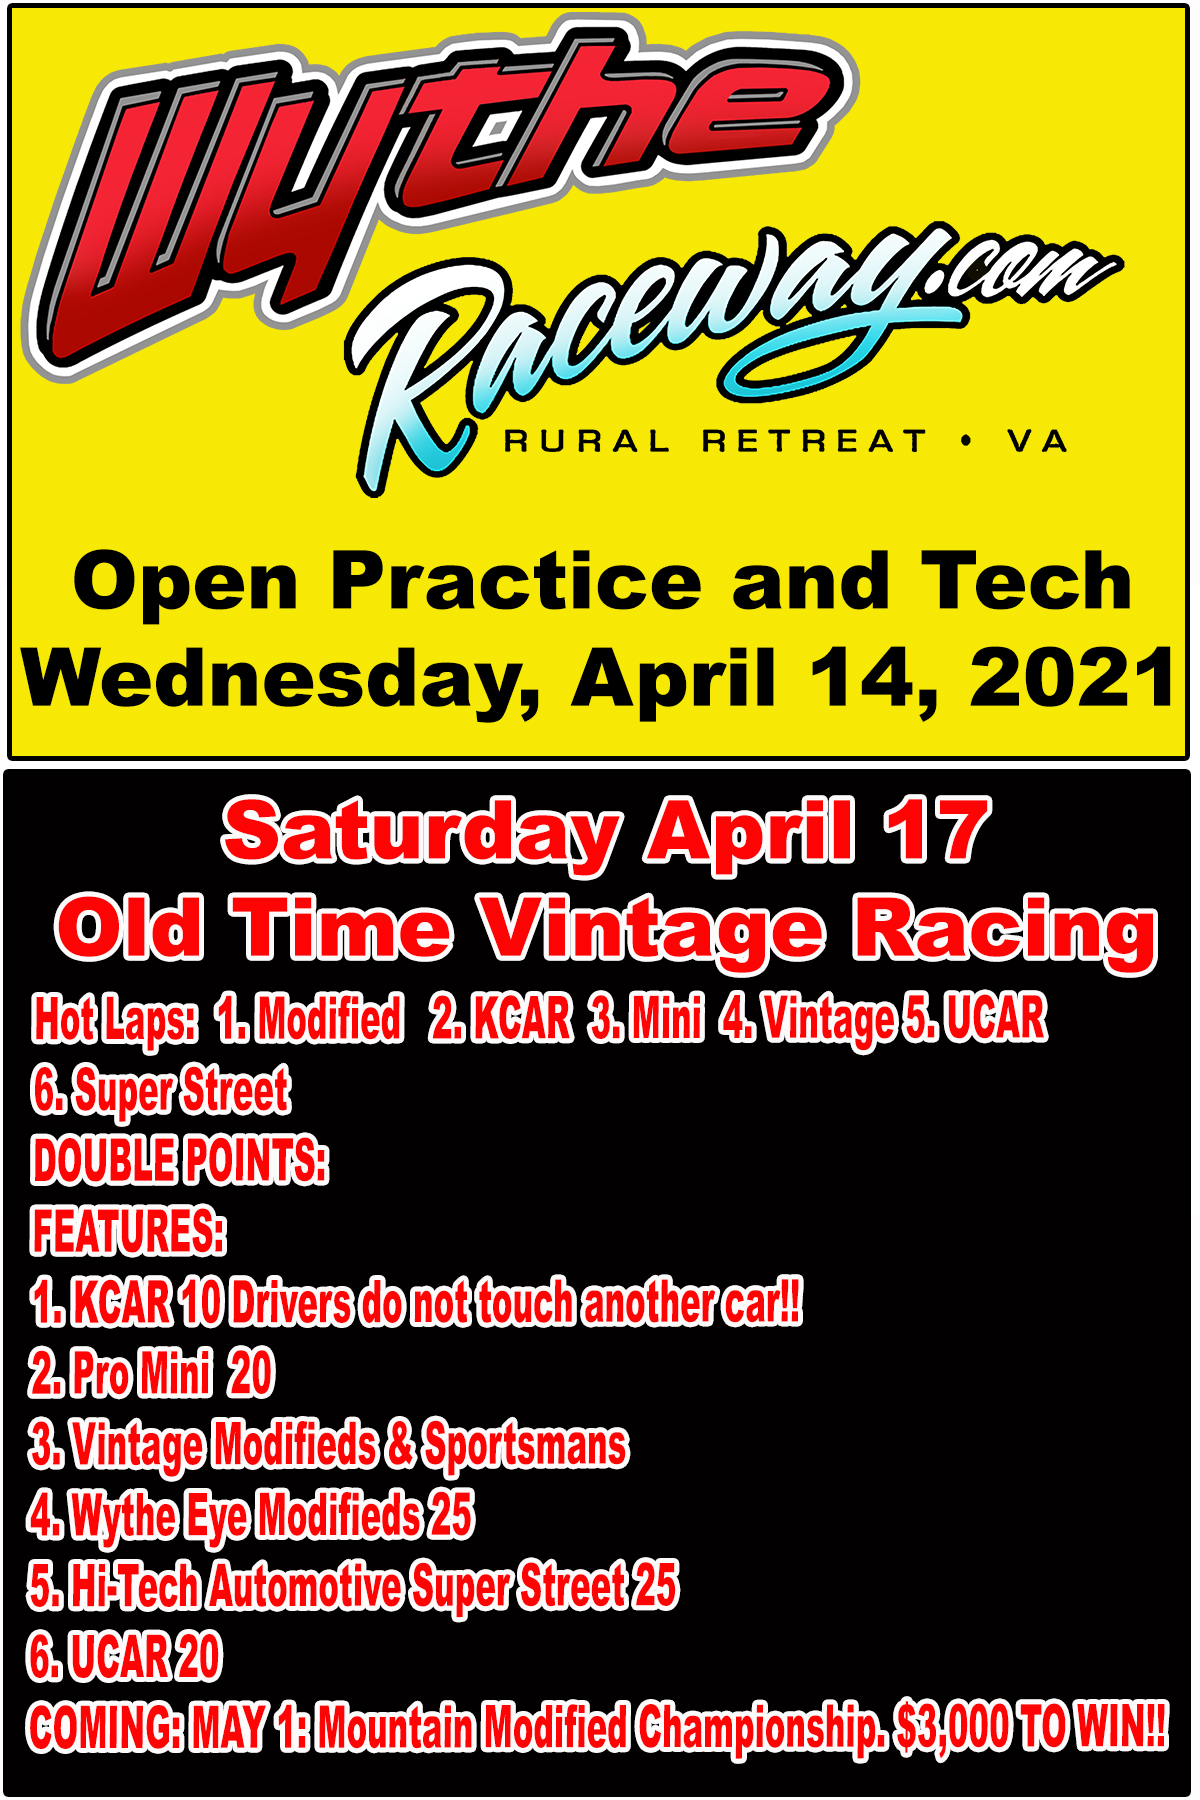 Open Practice and Tech ~ Wednesday April 14, 2021